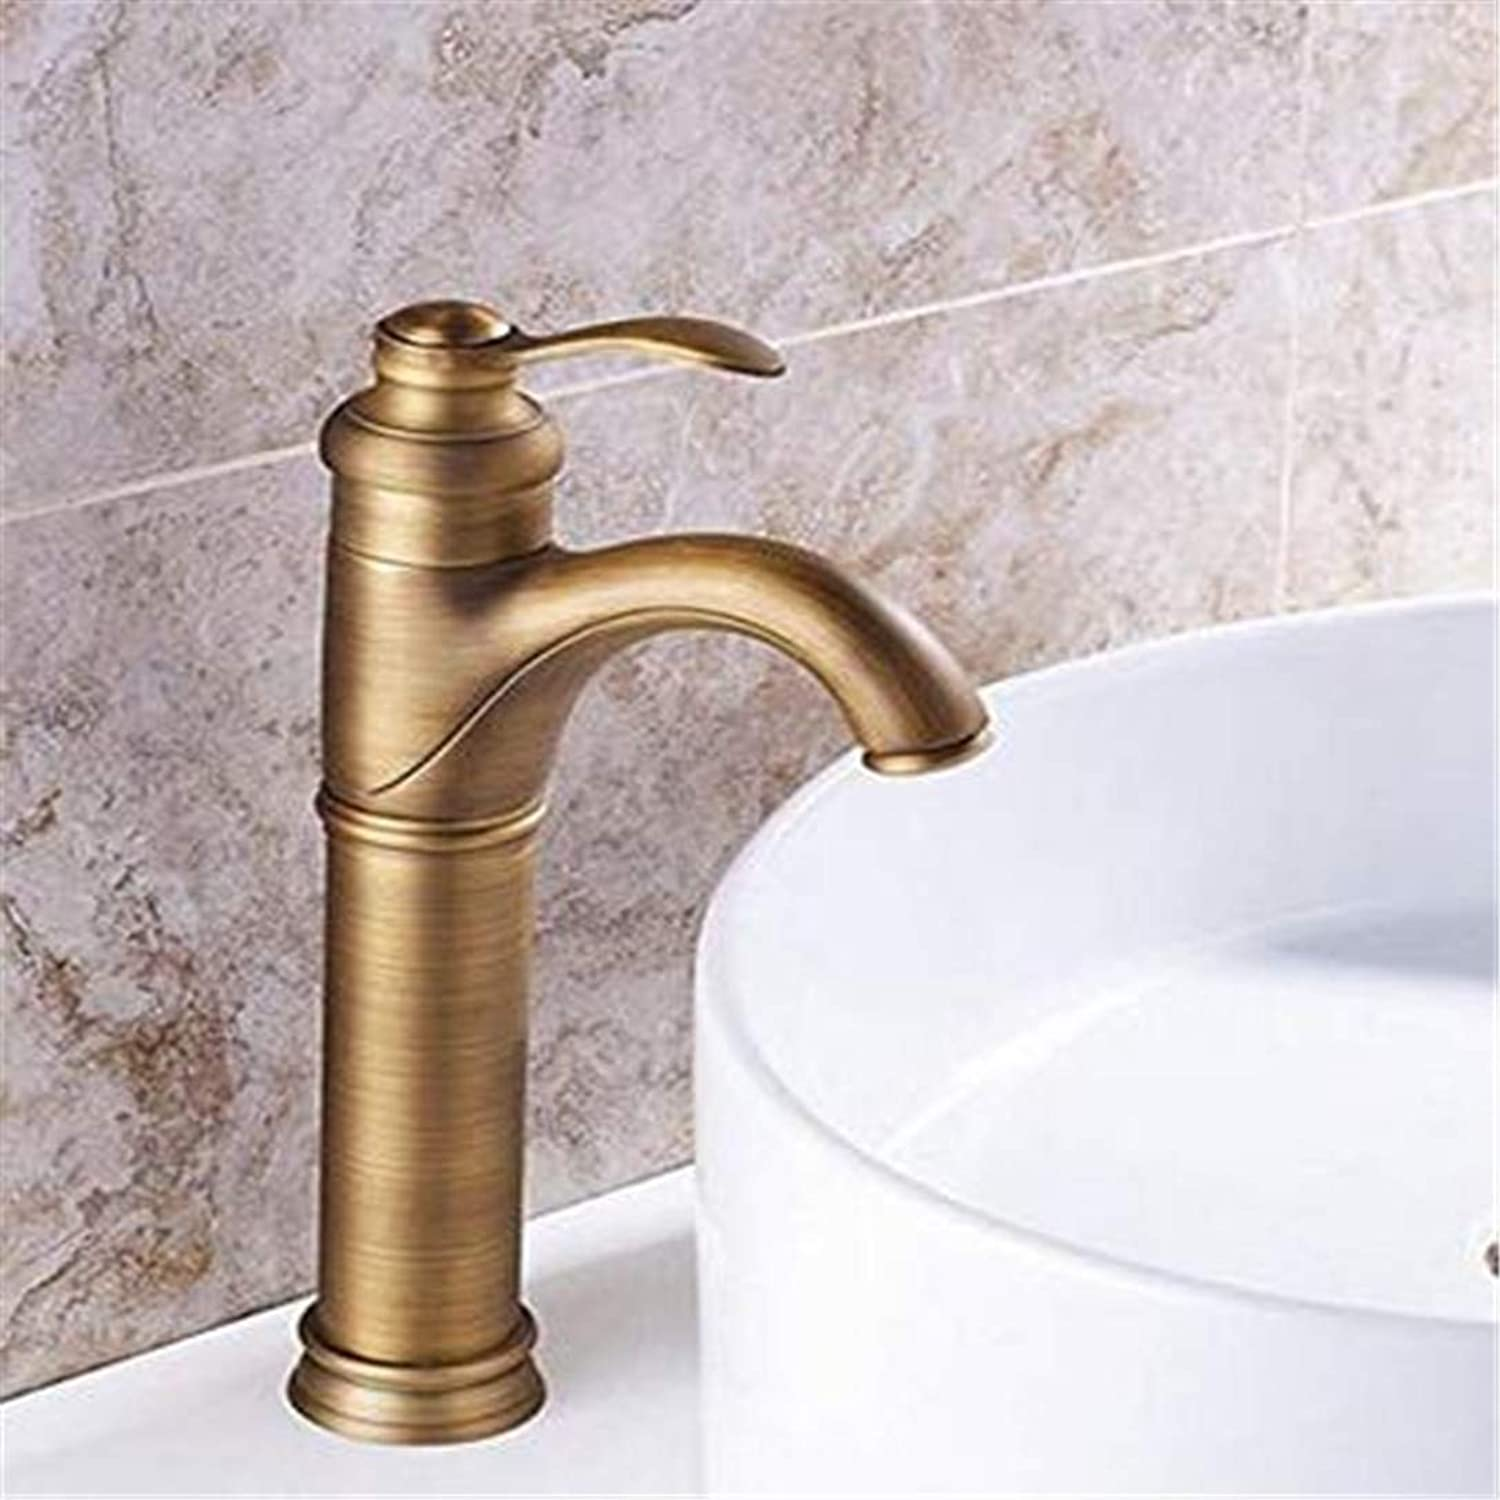 Basin Mixer Taps Kitchen Faucet Basin Mixer Tap On The Kitchen Sink Basin Mixer Tap Solid Brass Metal